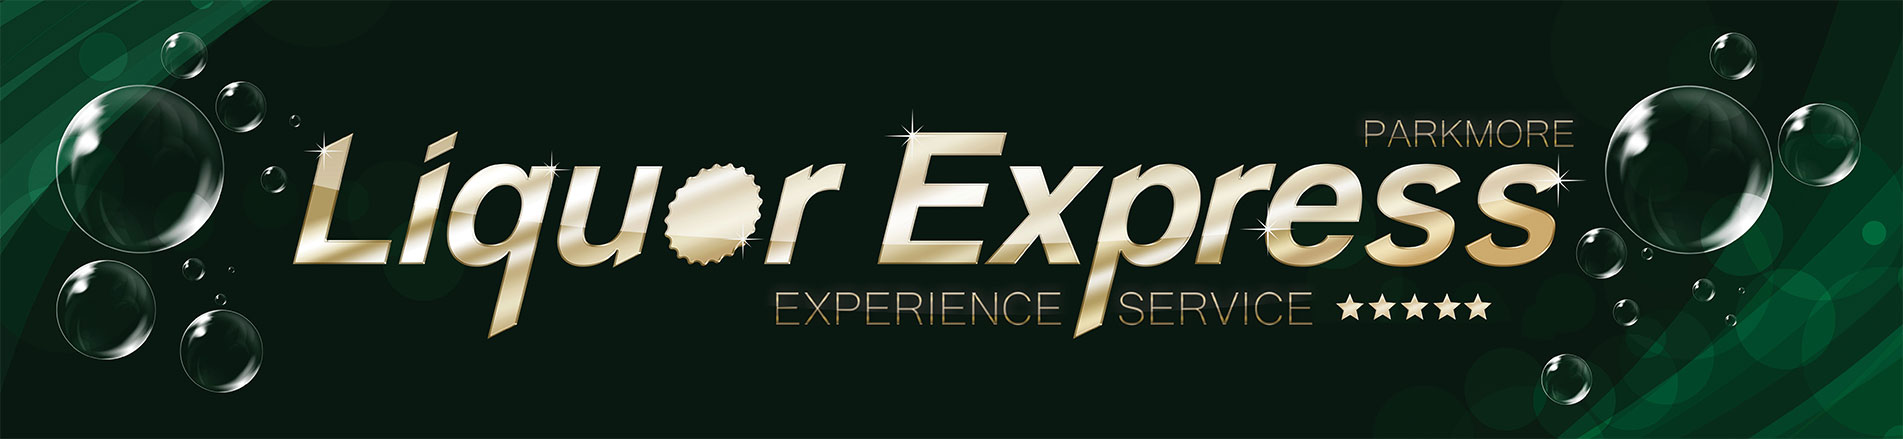 Welcome to Liquor Express- Experience Service!